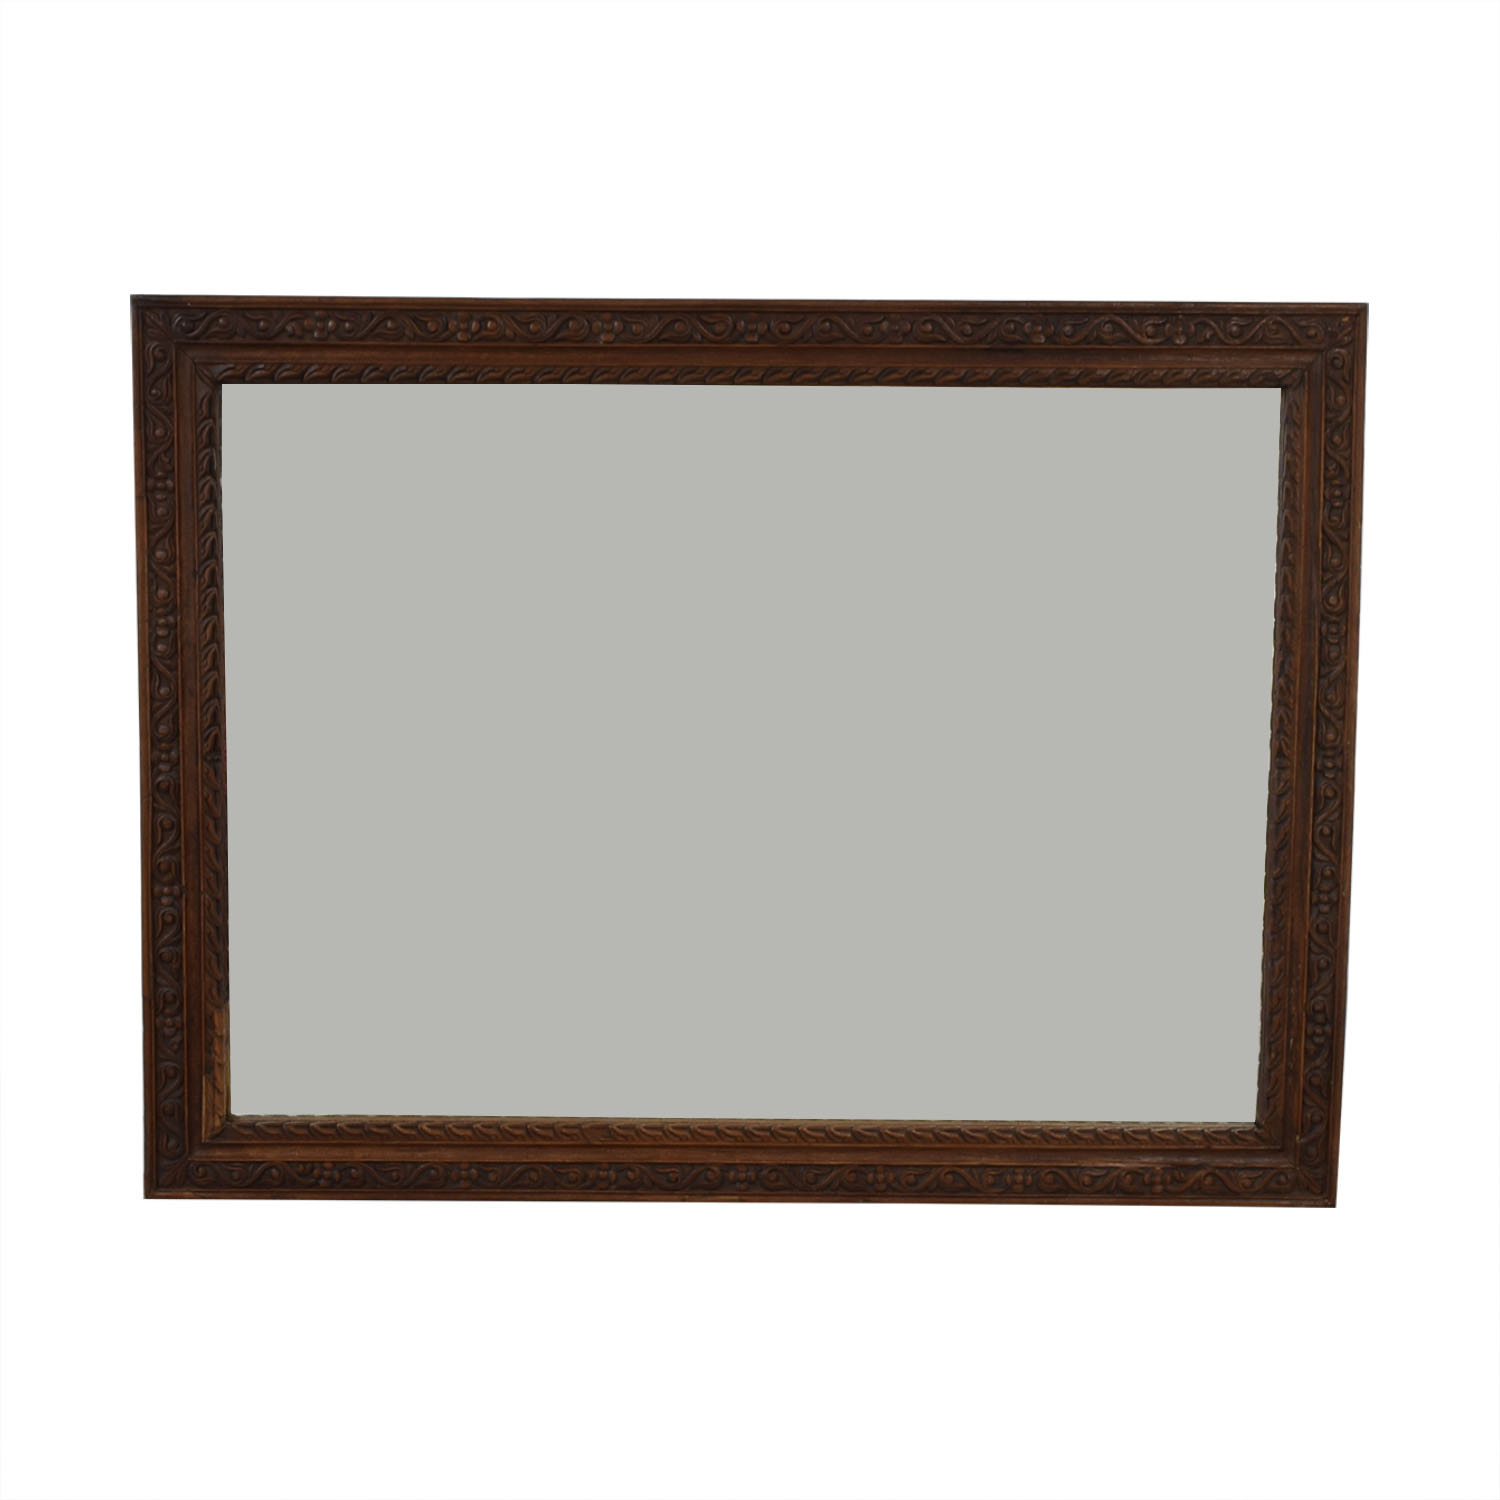 Large Carved Wood Mirror price